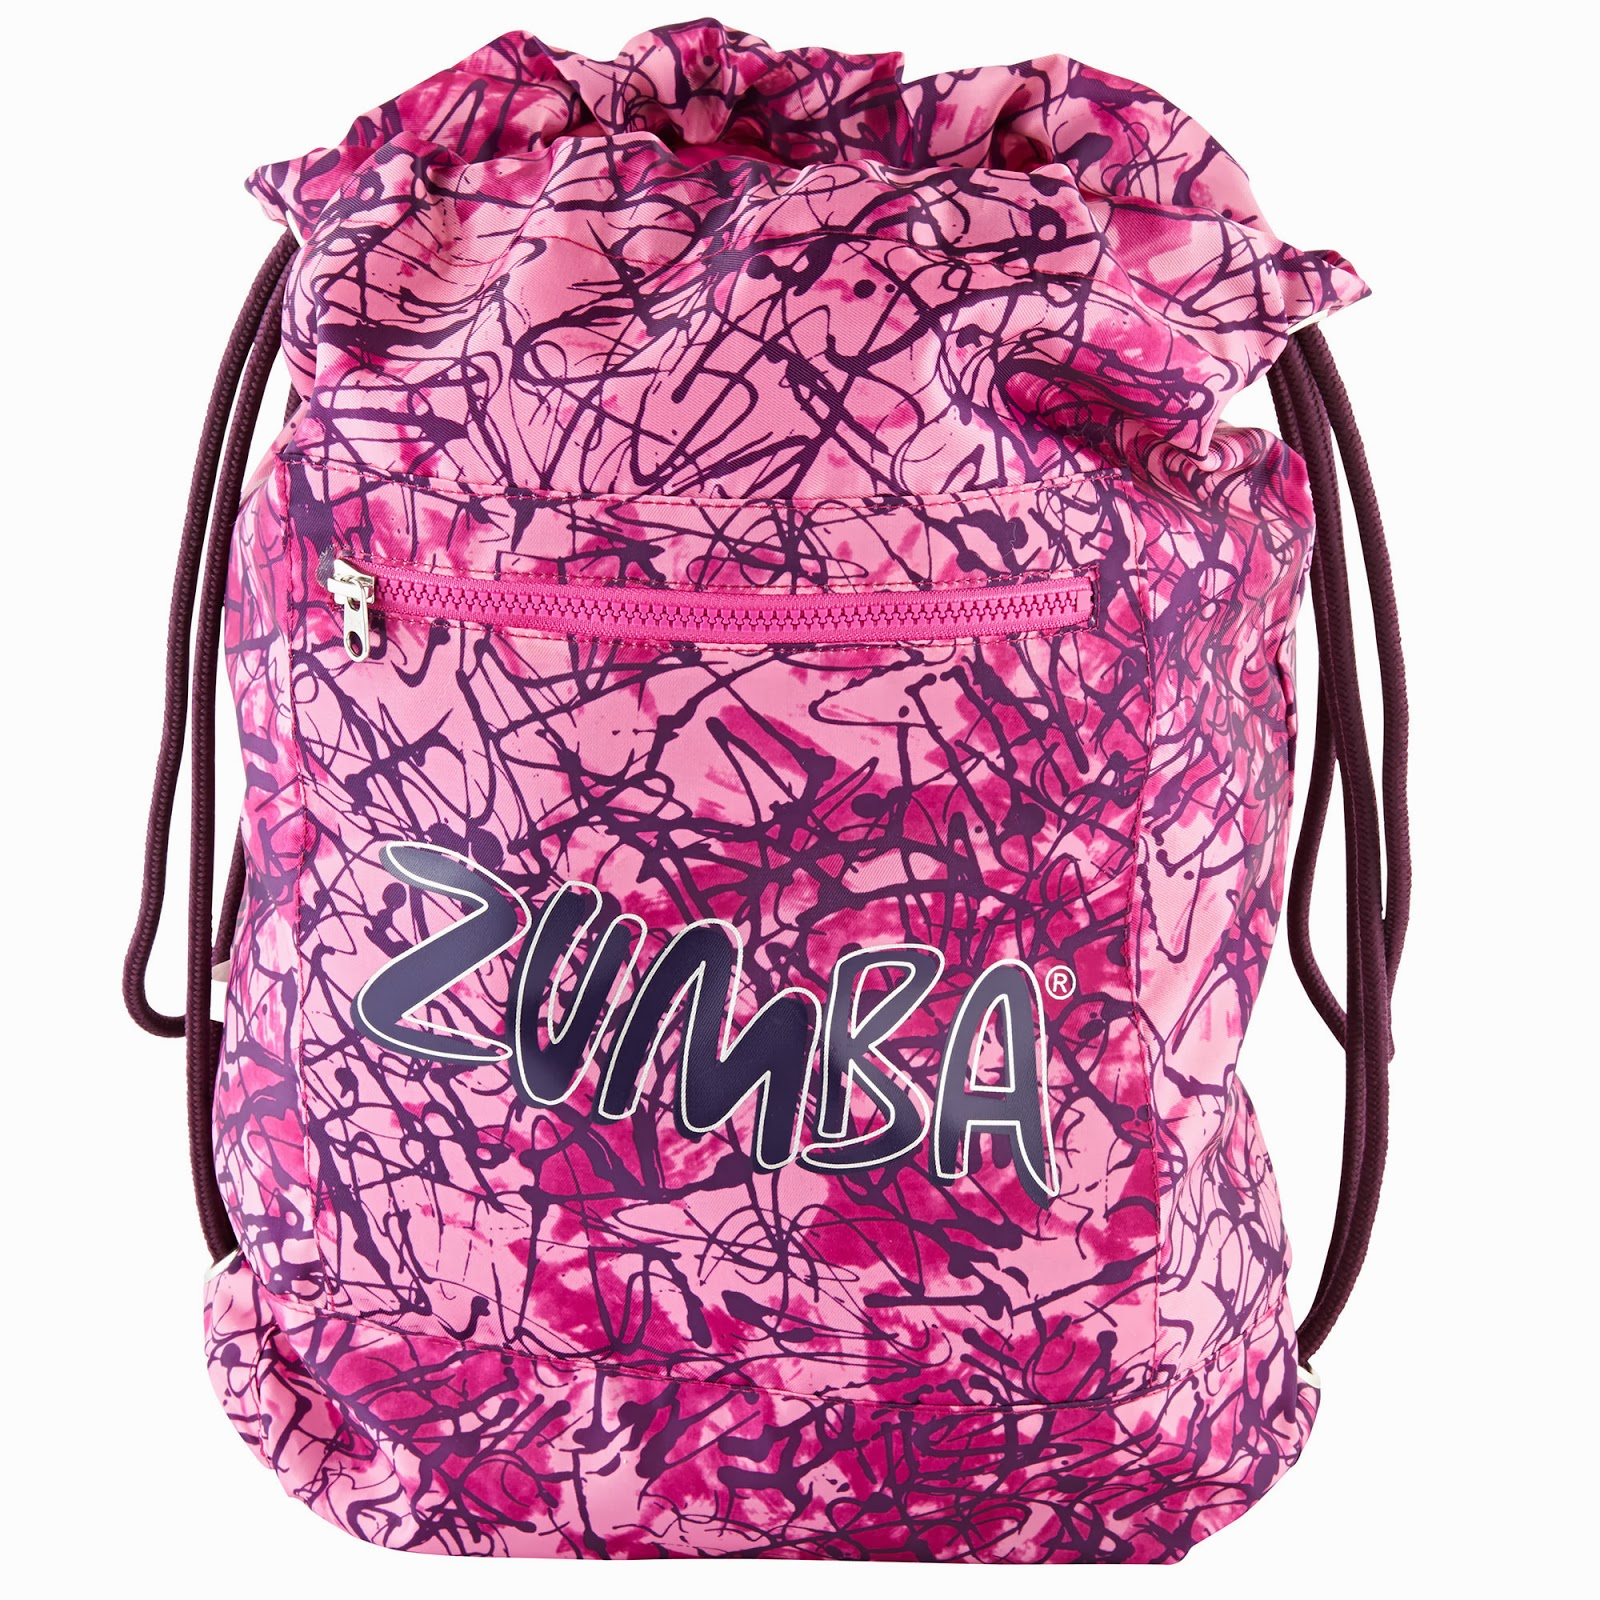 http://www.zumba.com/en-US/store-zin/US/product/cant-touch-this-bag?color=Positively+Pinktronic